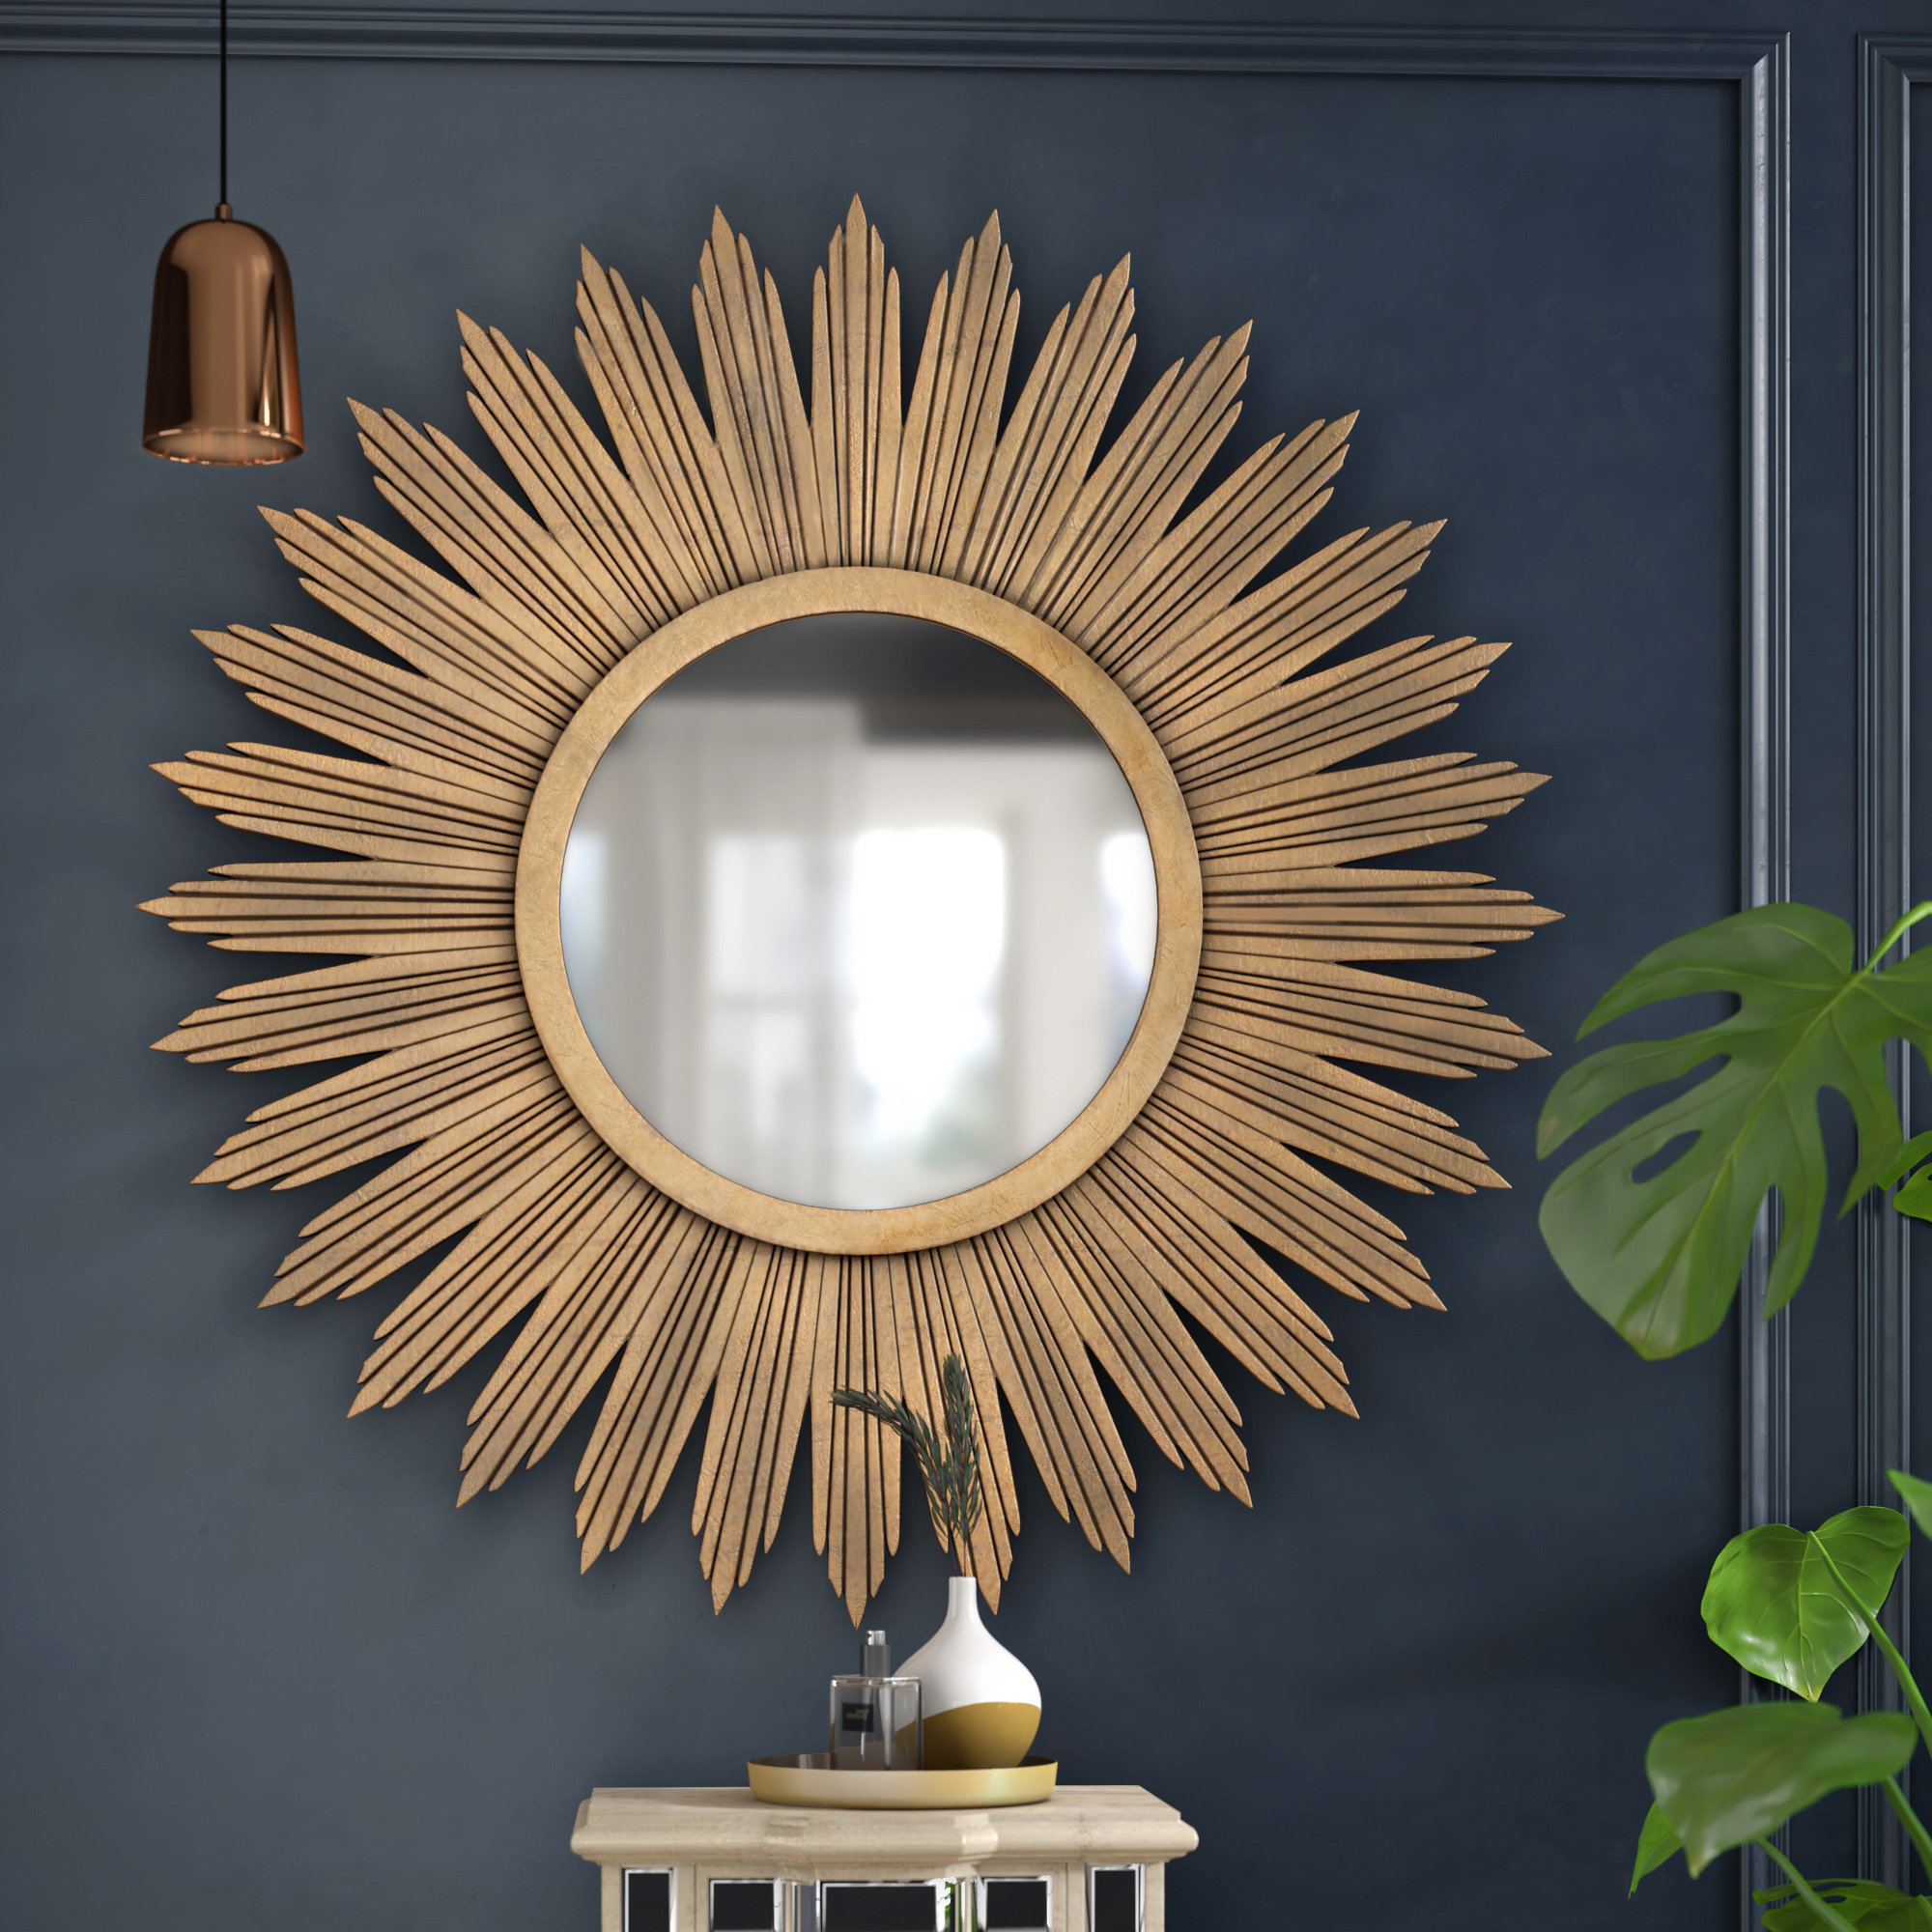 Aged Gold Wall Décor Modern & Contemporary Wall Mirror Regarding Most Current Harbert Modern And Contemporary Distressed Accent Mirrors (View 11 of 20)